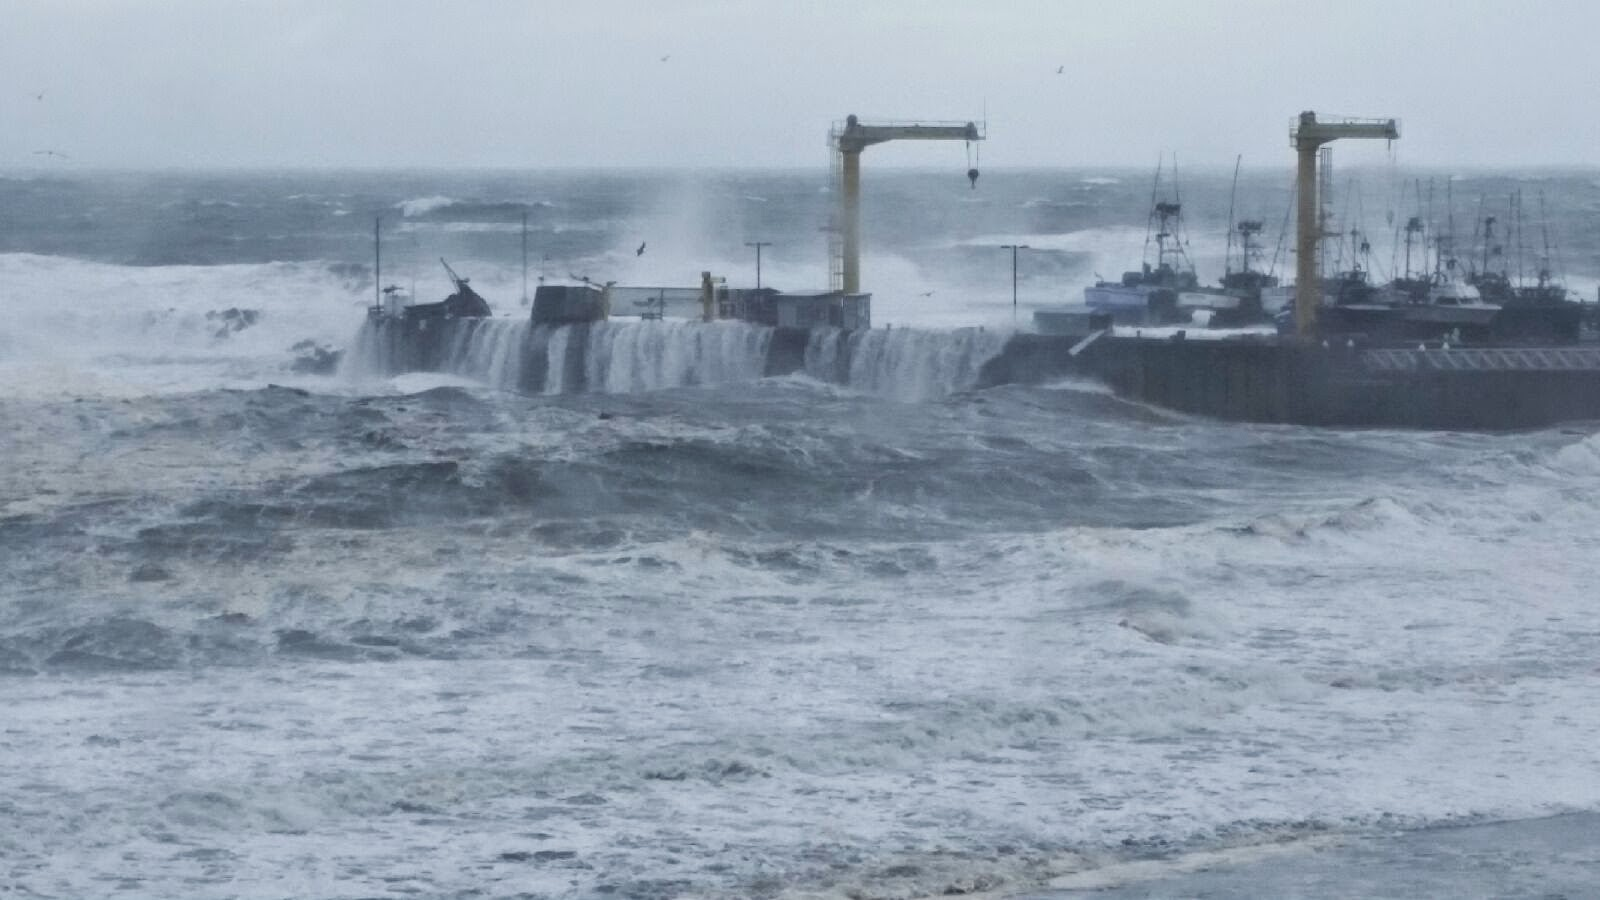 Port Orford docks awash in violent storm October 2014